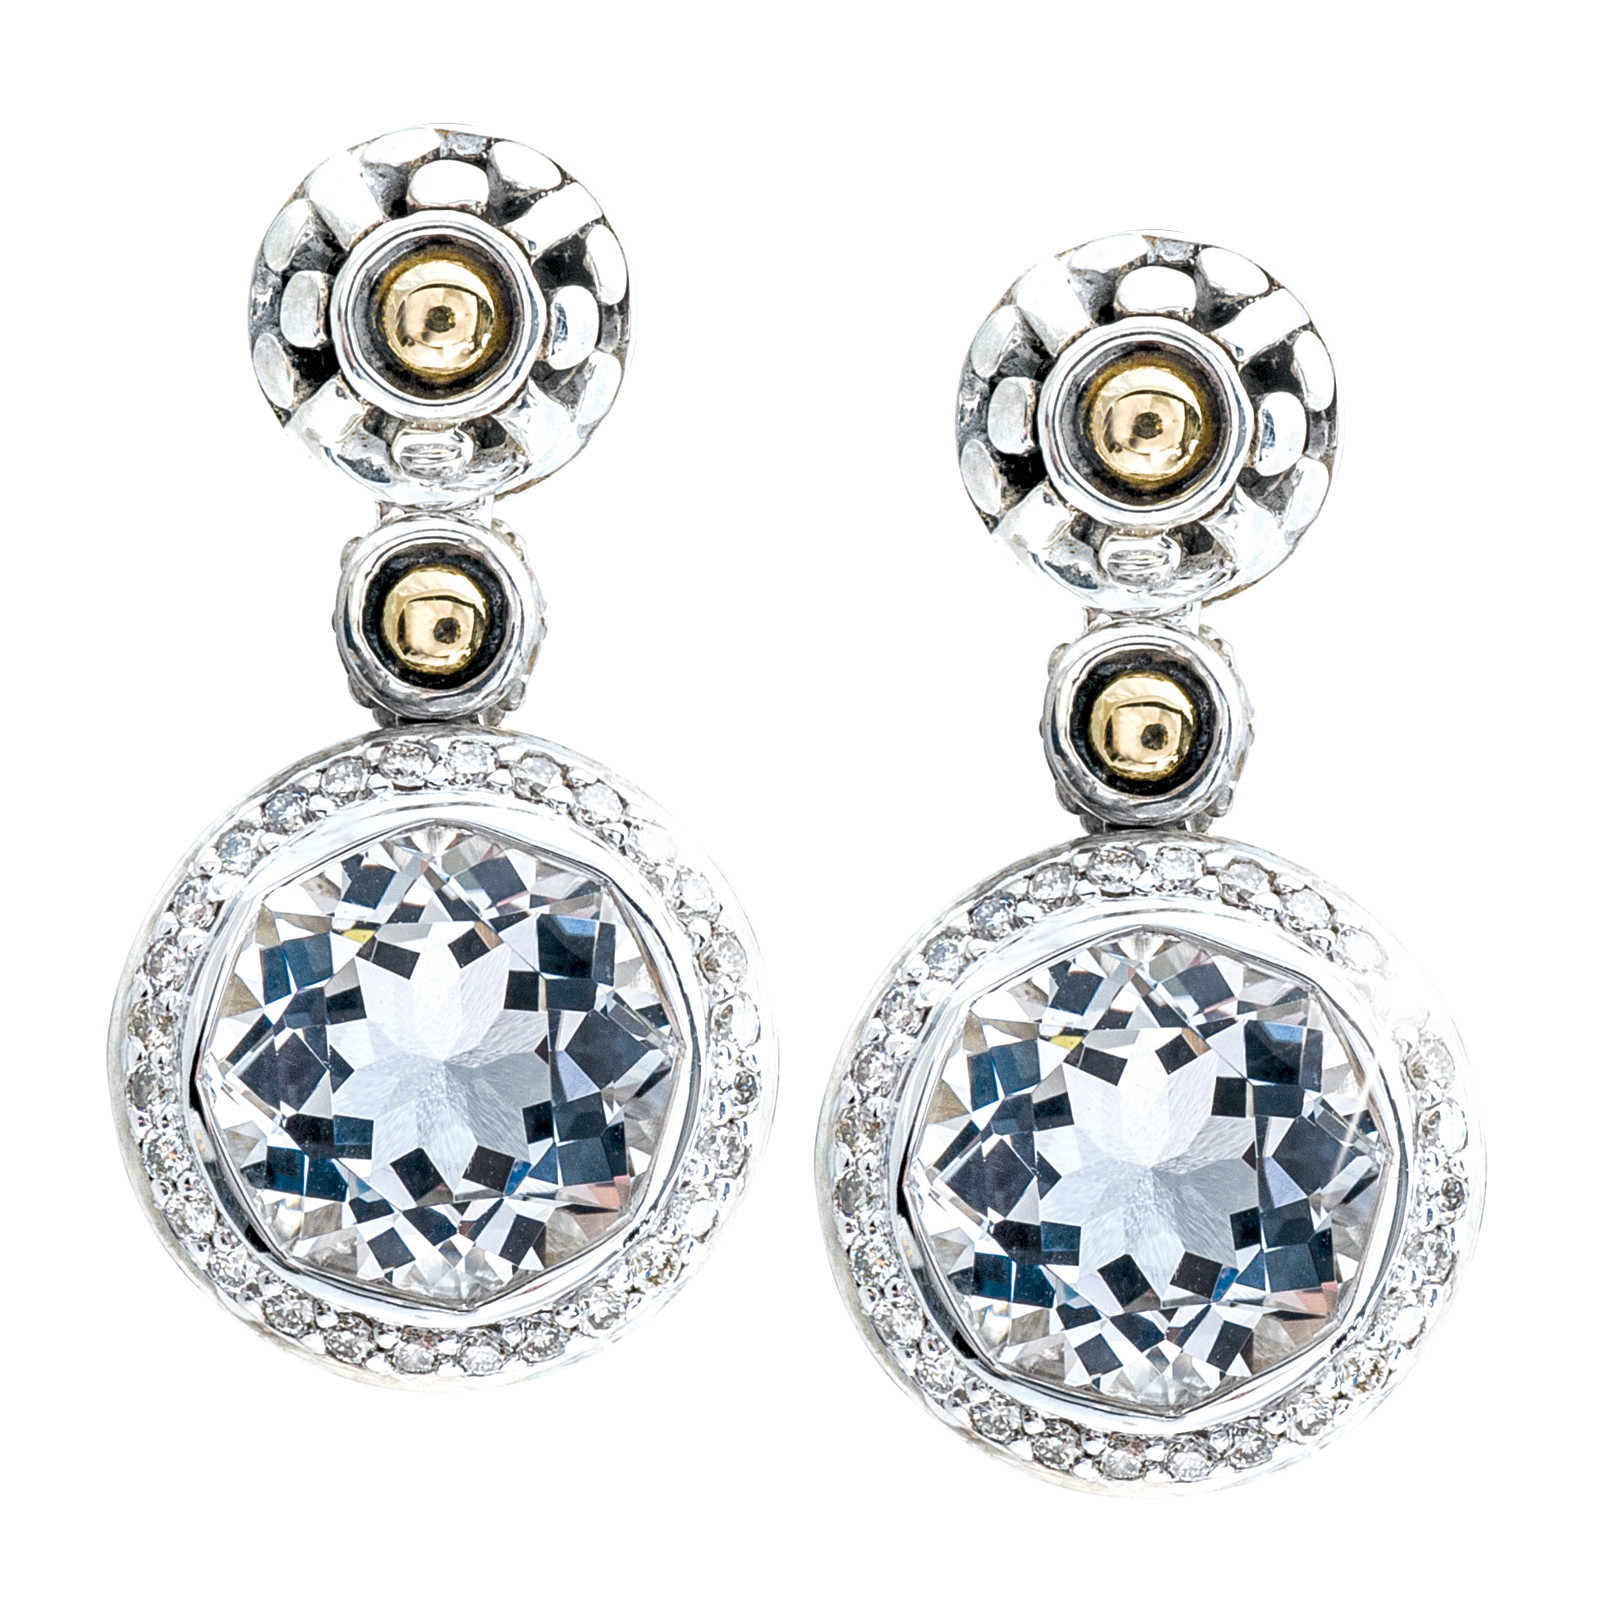 Vintage John Hardy Batu Sari Pavé Diamond & Topaz Earrings